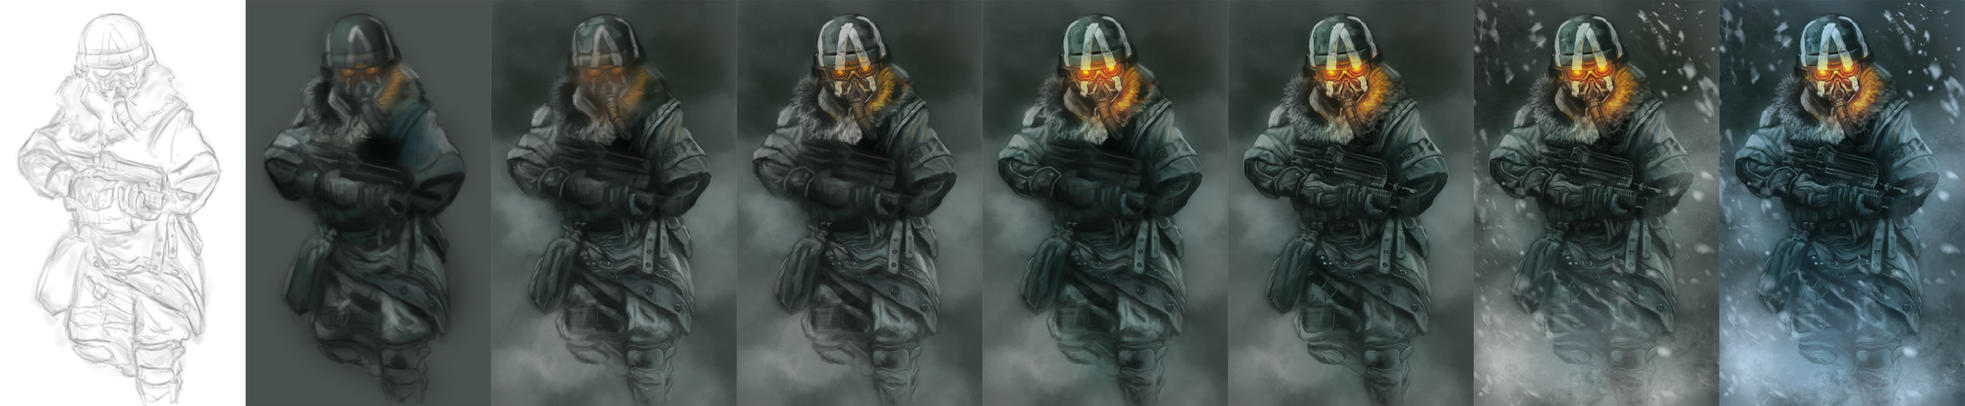 Killzone Study Process by x-ste-x